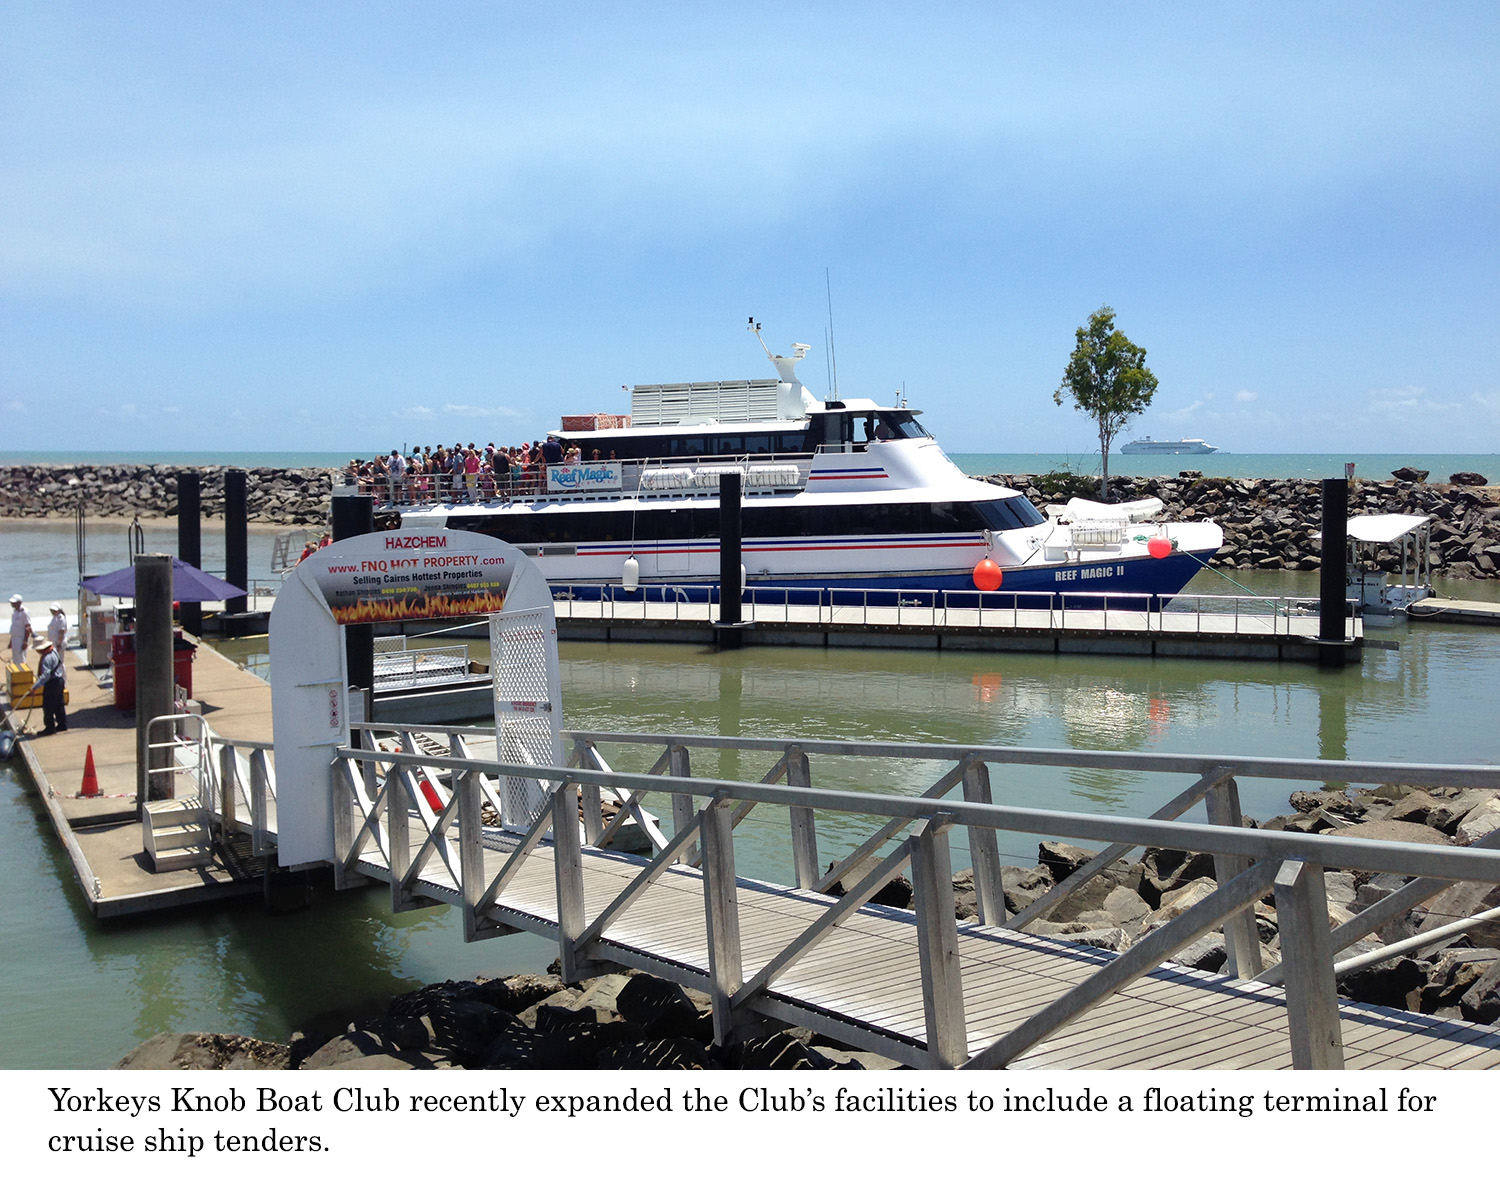 Bellingham Marine utilizes concrete pontoons in construction of new cruise ship tender terminal